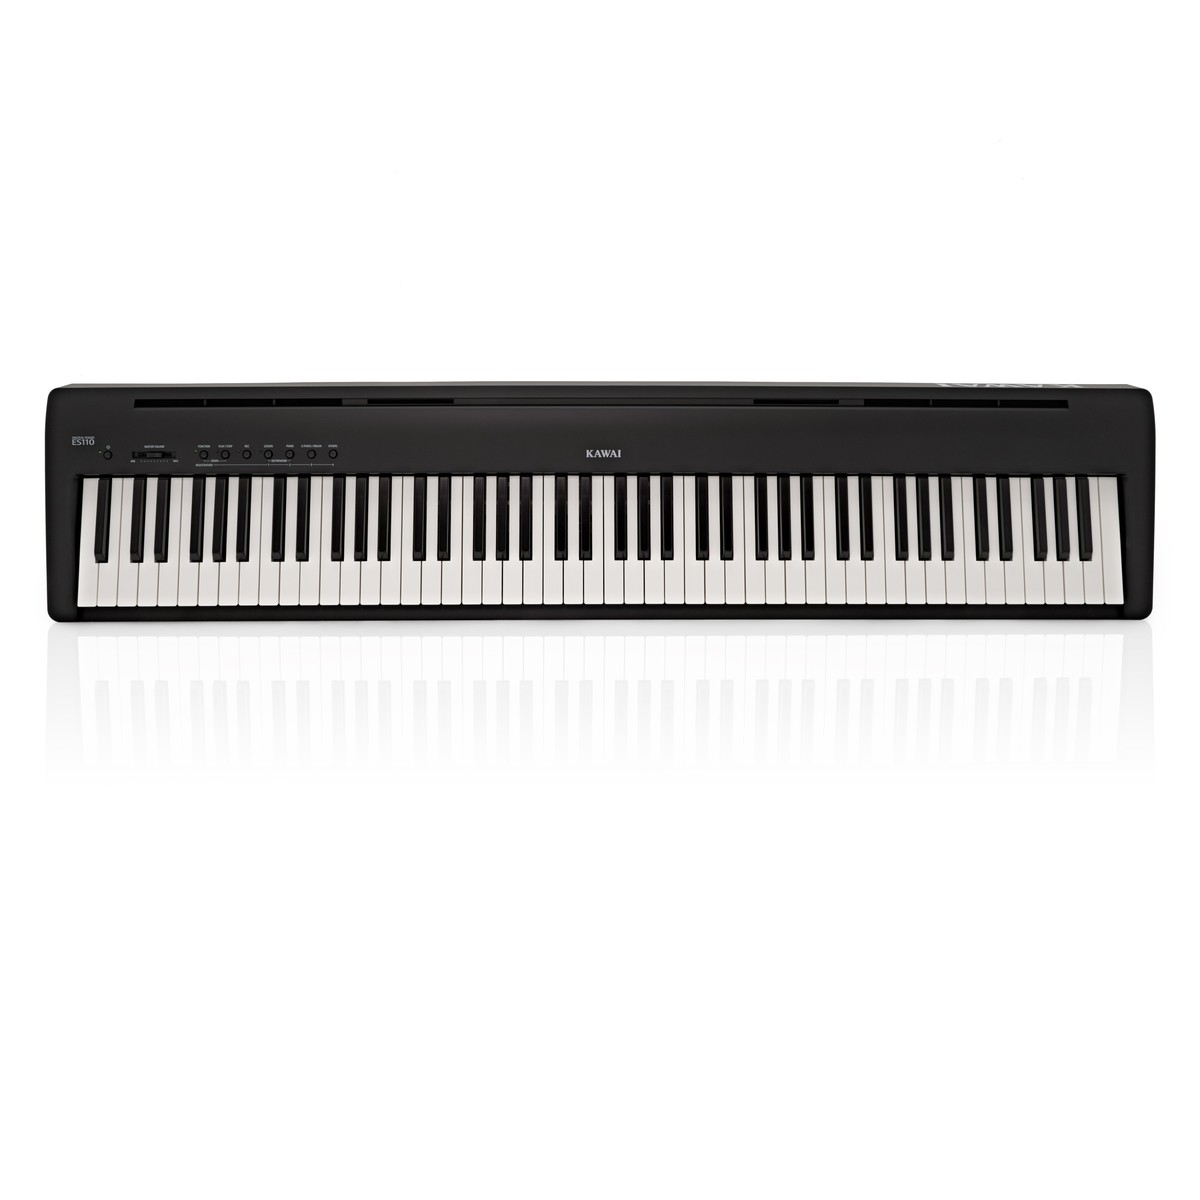 1200x1200 Kawai Es110 Digital Stage Piano, Black